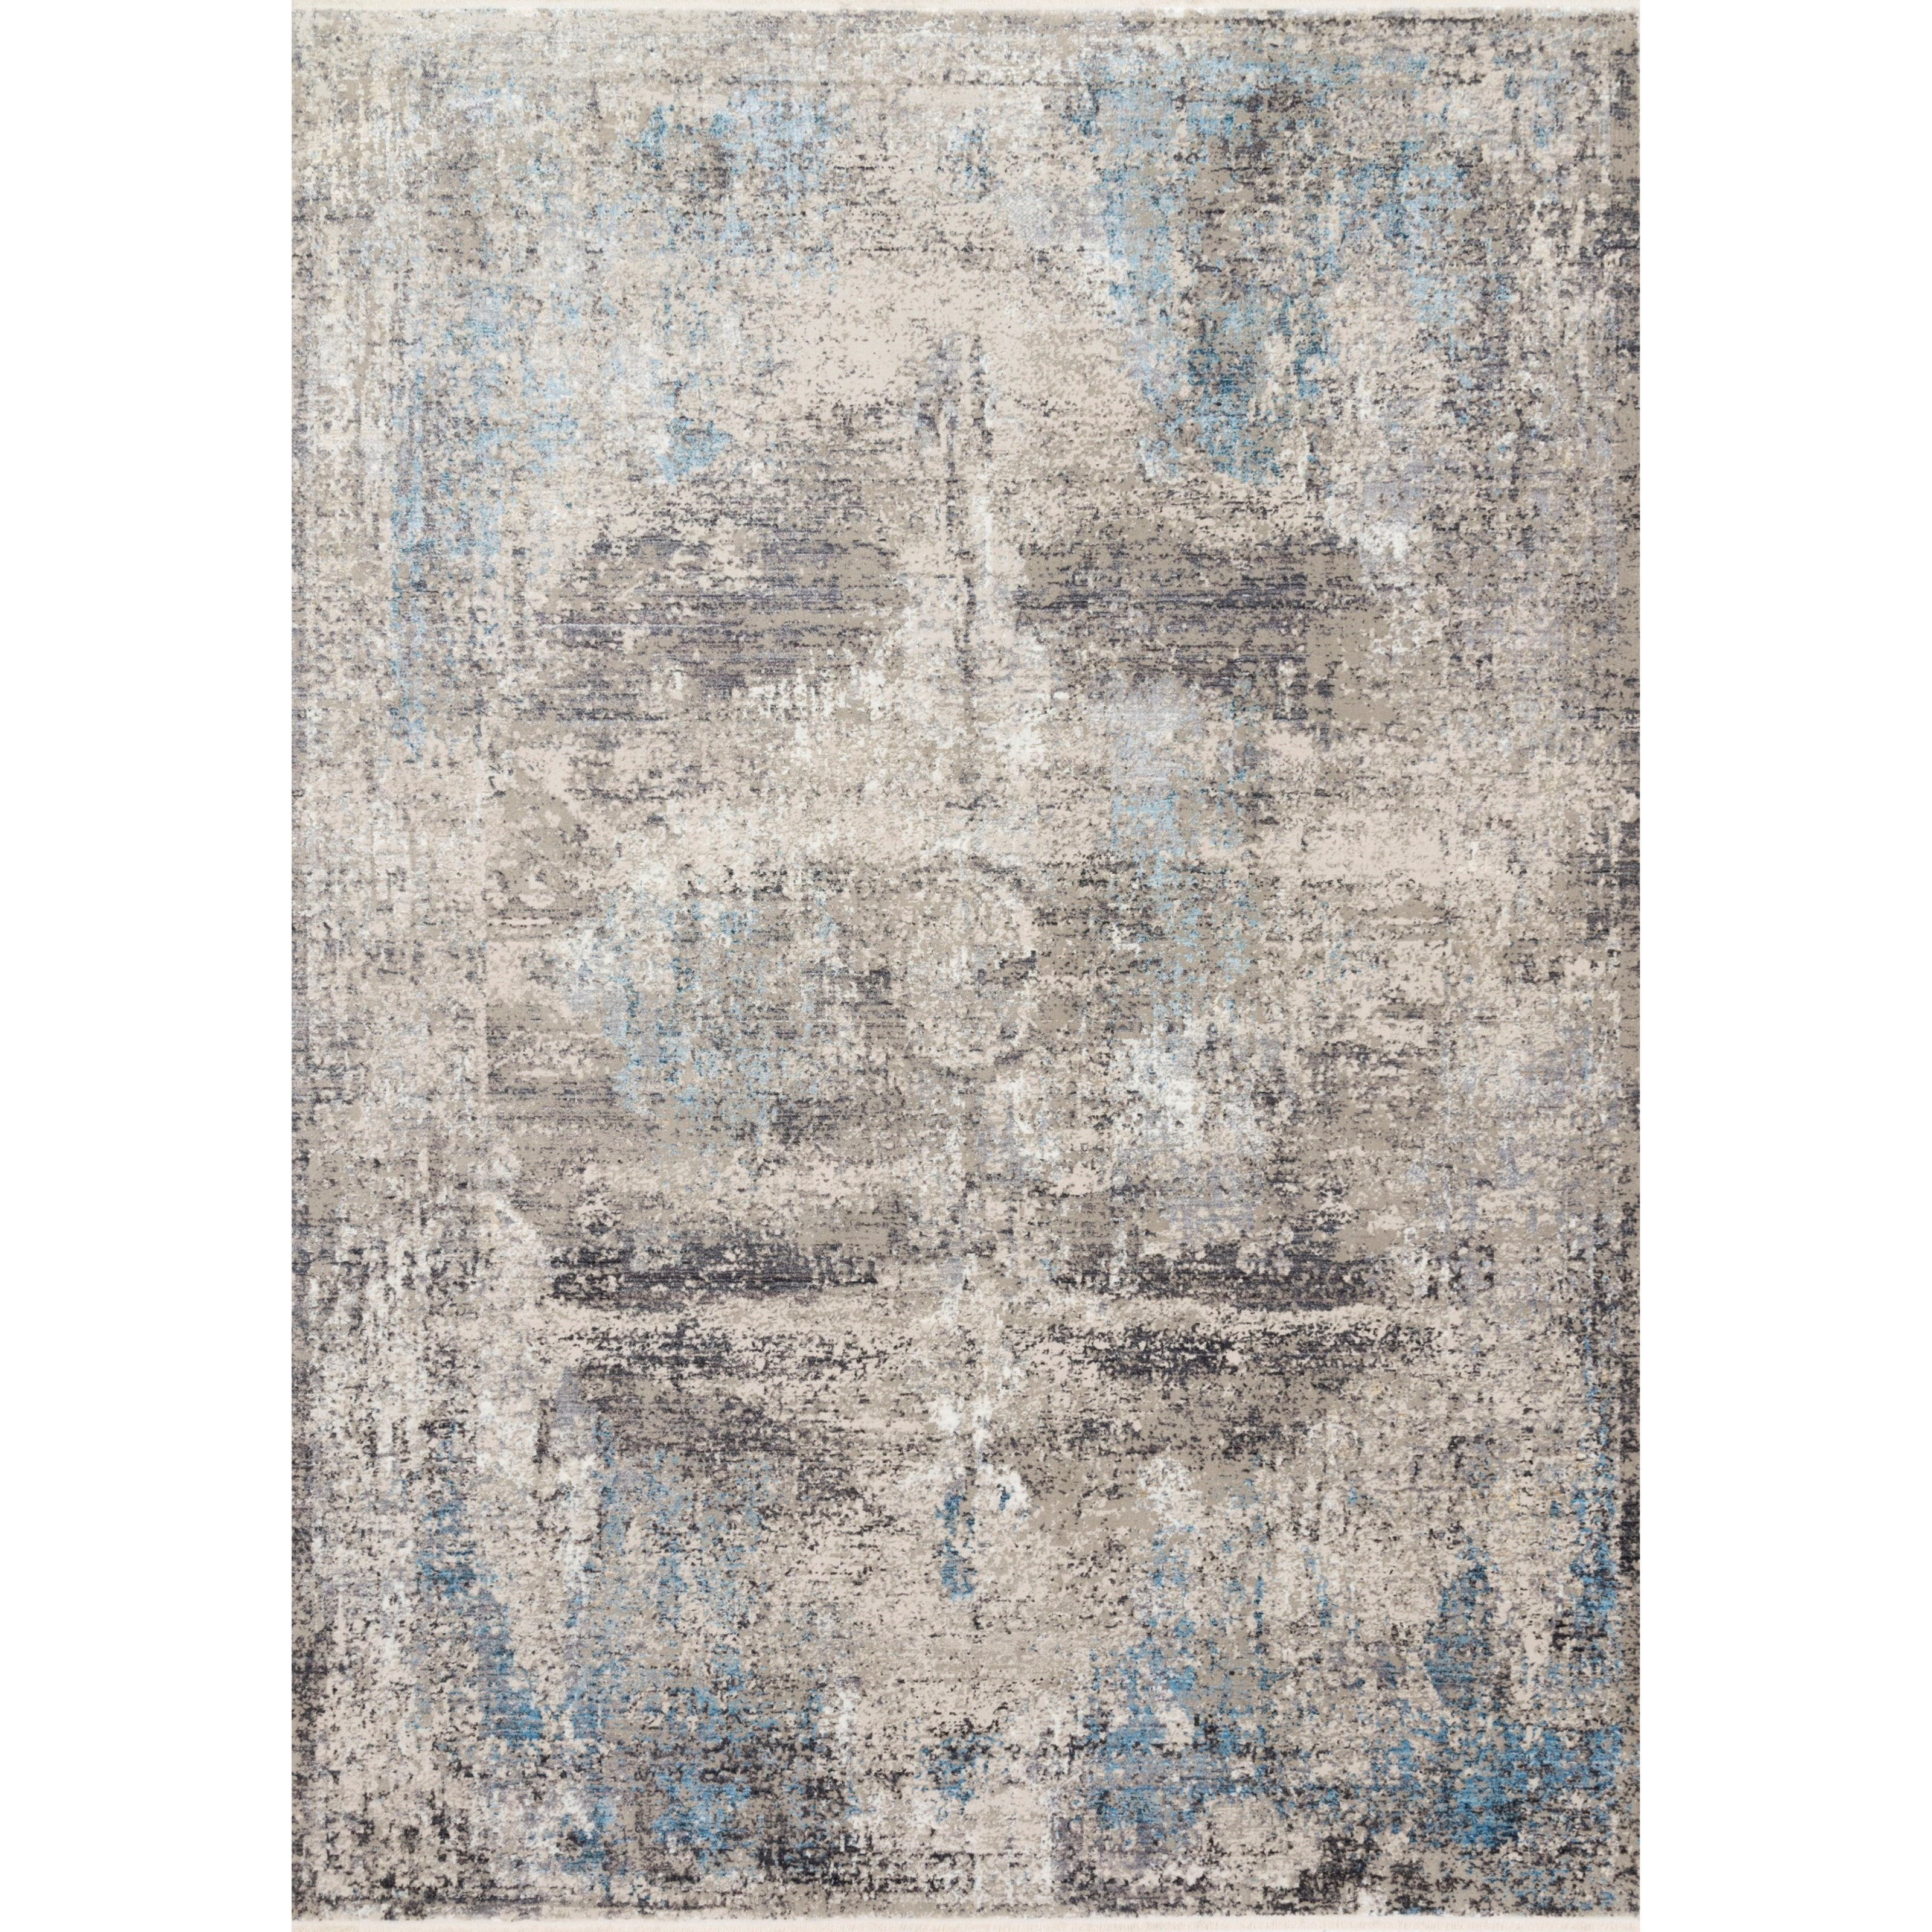 "Franca 7'10"" x 10'2"" Slate / Sky Rug by Loloi Rugs at Pedigo Furniture"